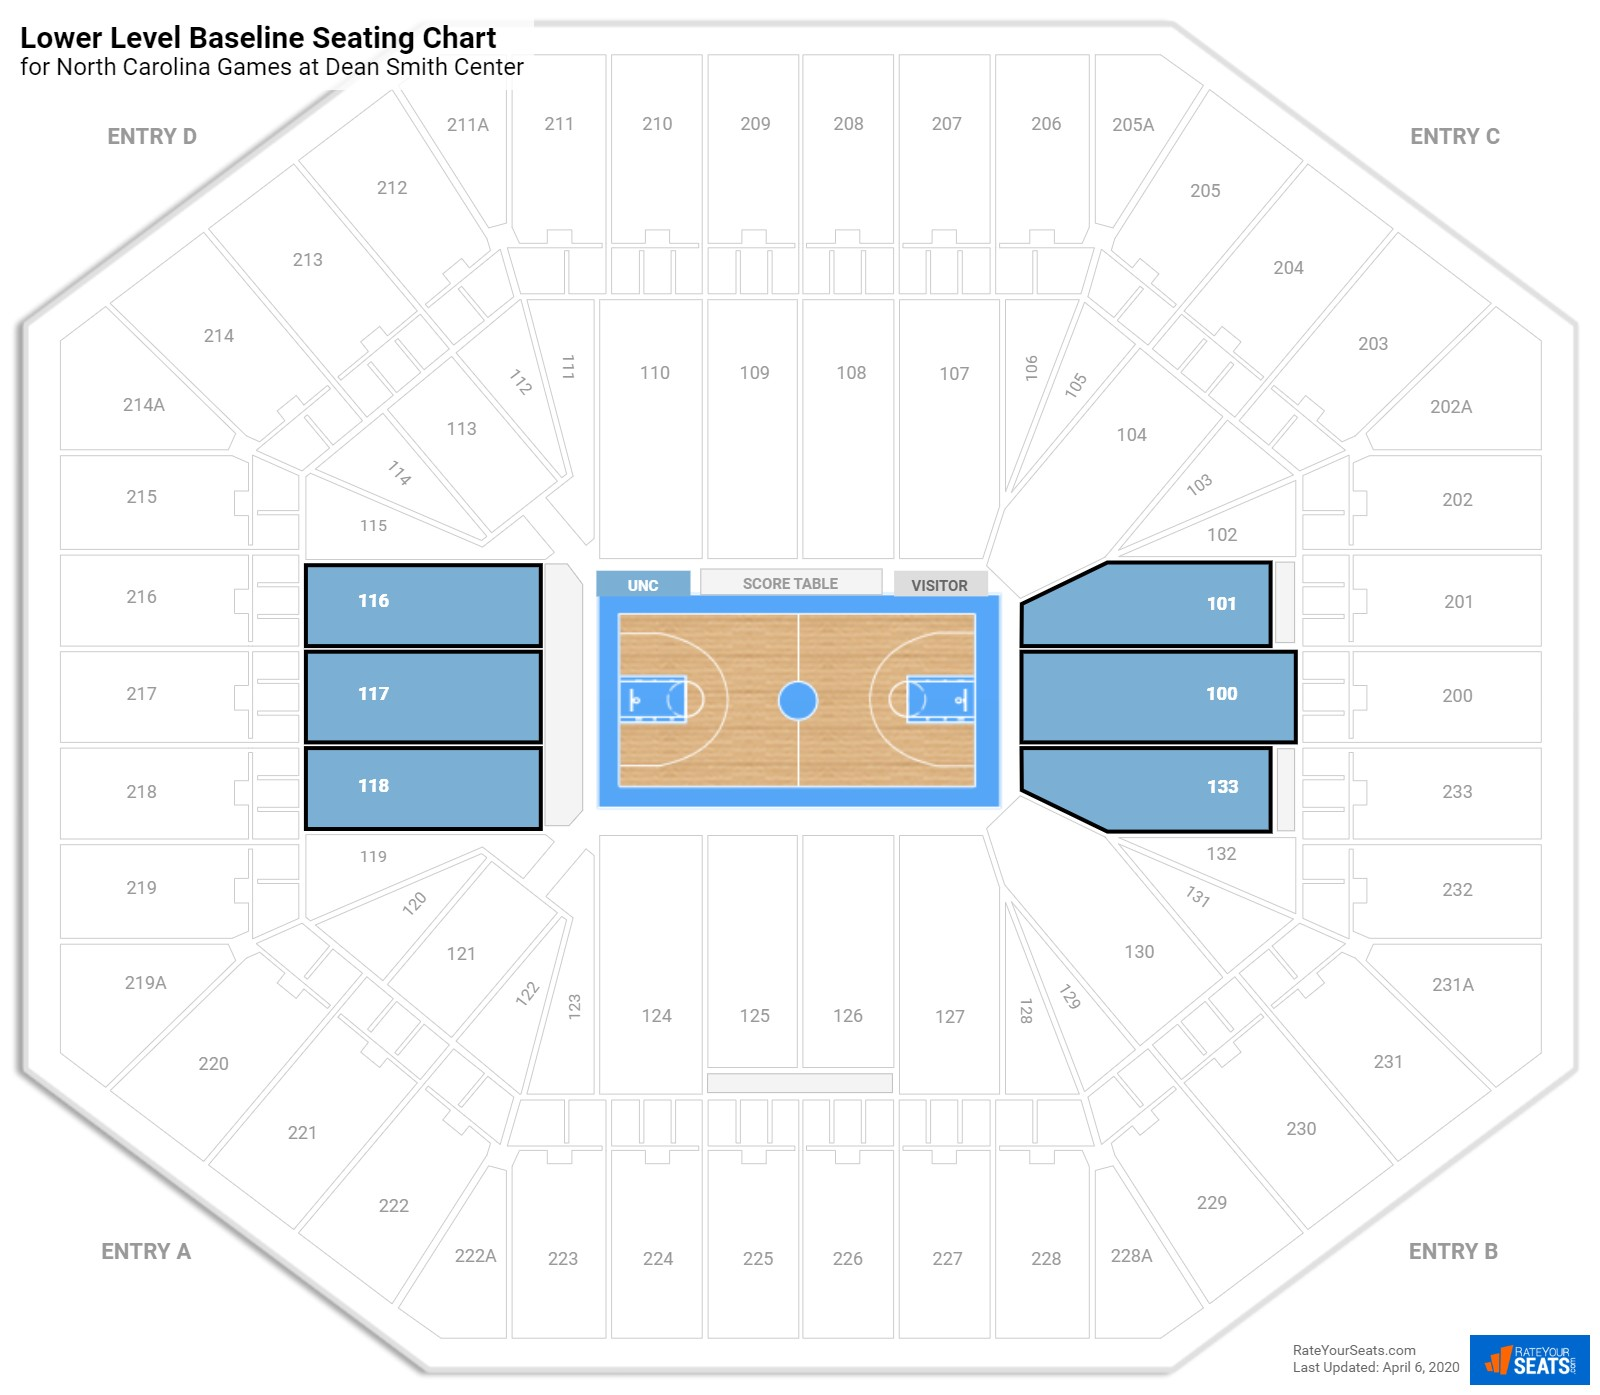 Dean smith center north carolina seating guide rateyourseats com